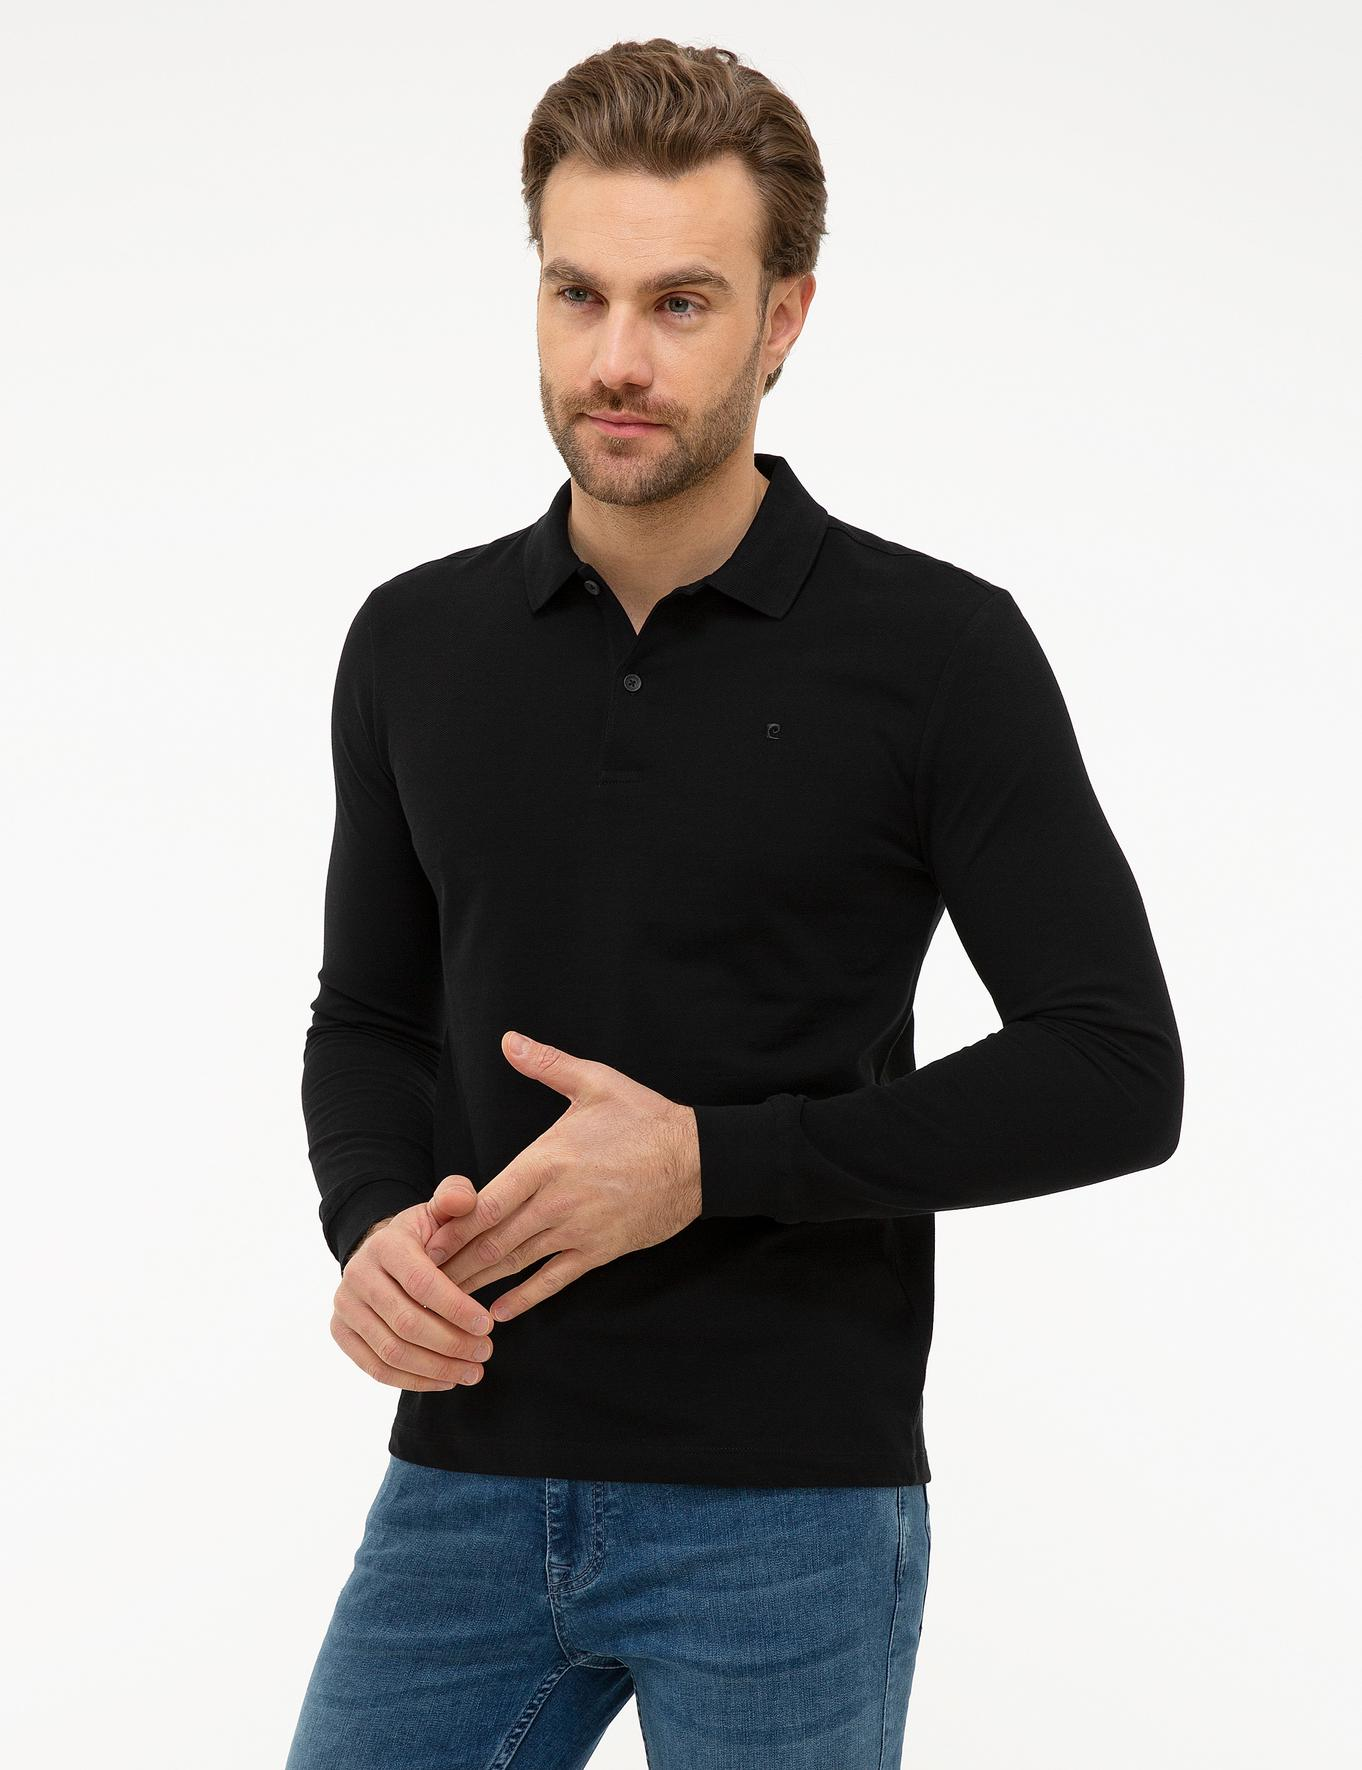 Siyah Slim Fit Polo Yaka Sweatshirt